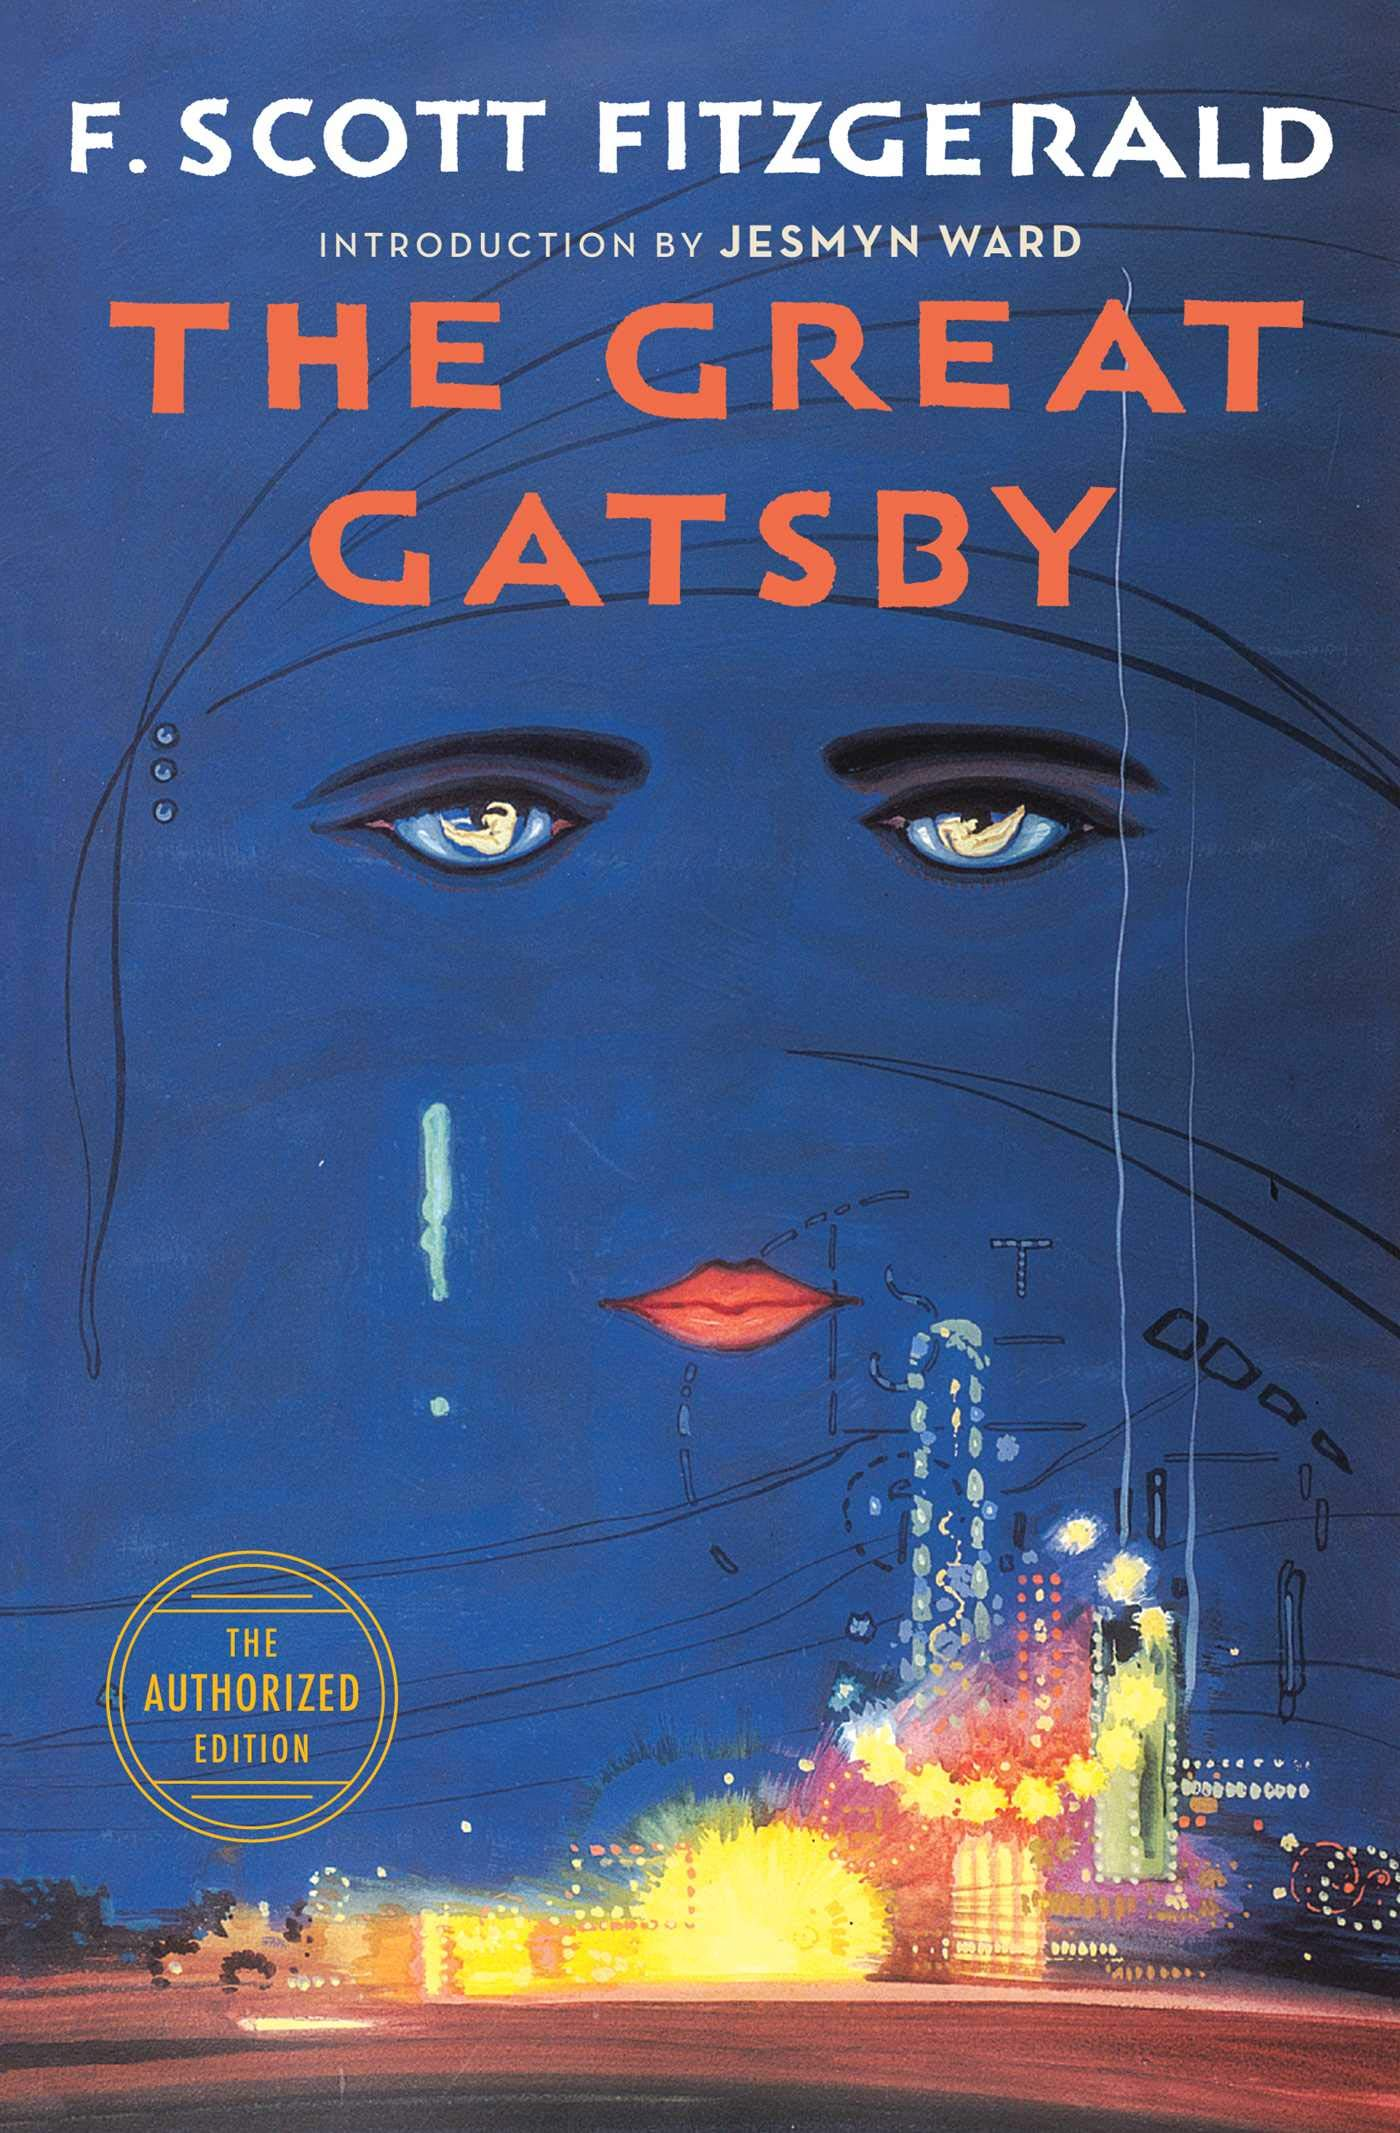 Amazon.com: The Great Gatsby (9780743273565): Fitzgerald, F. Scott: Books